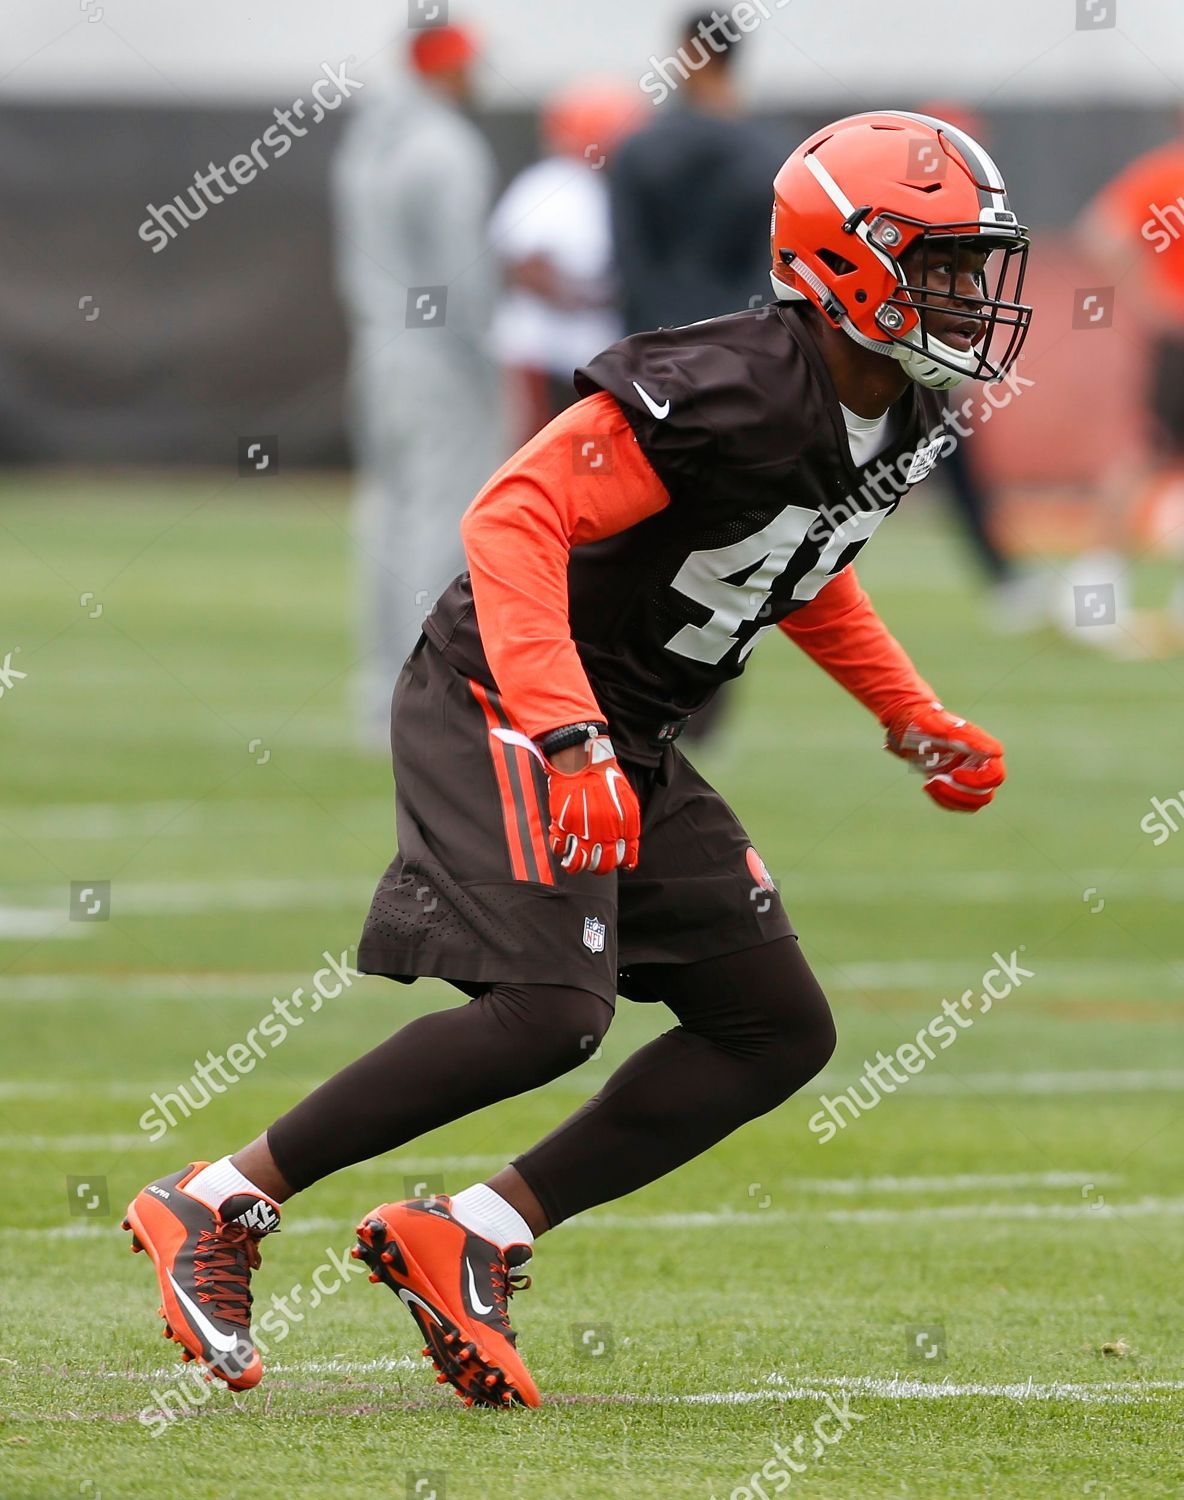 reputable site 619fa 49605 Cleveland Browns Kenneth Olugbode goes through drills ...